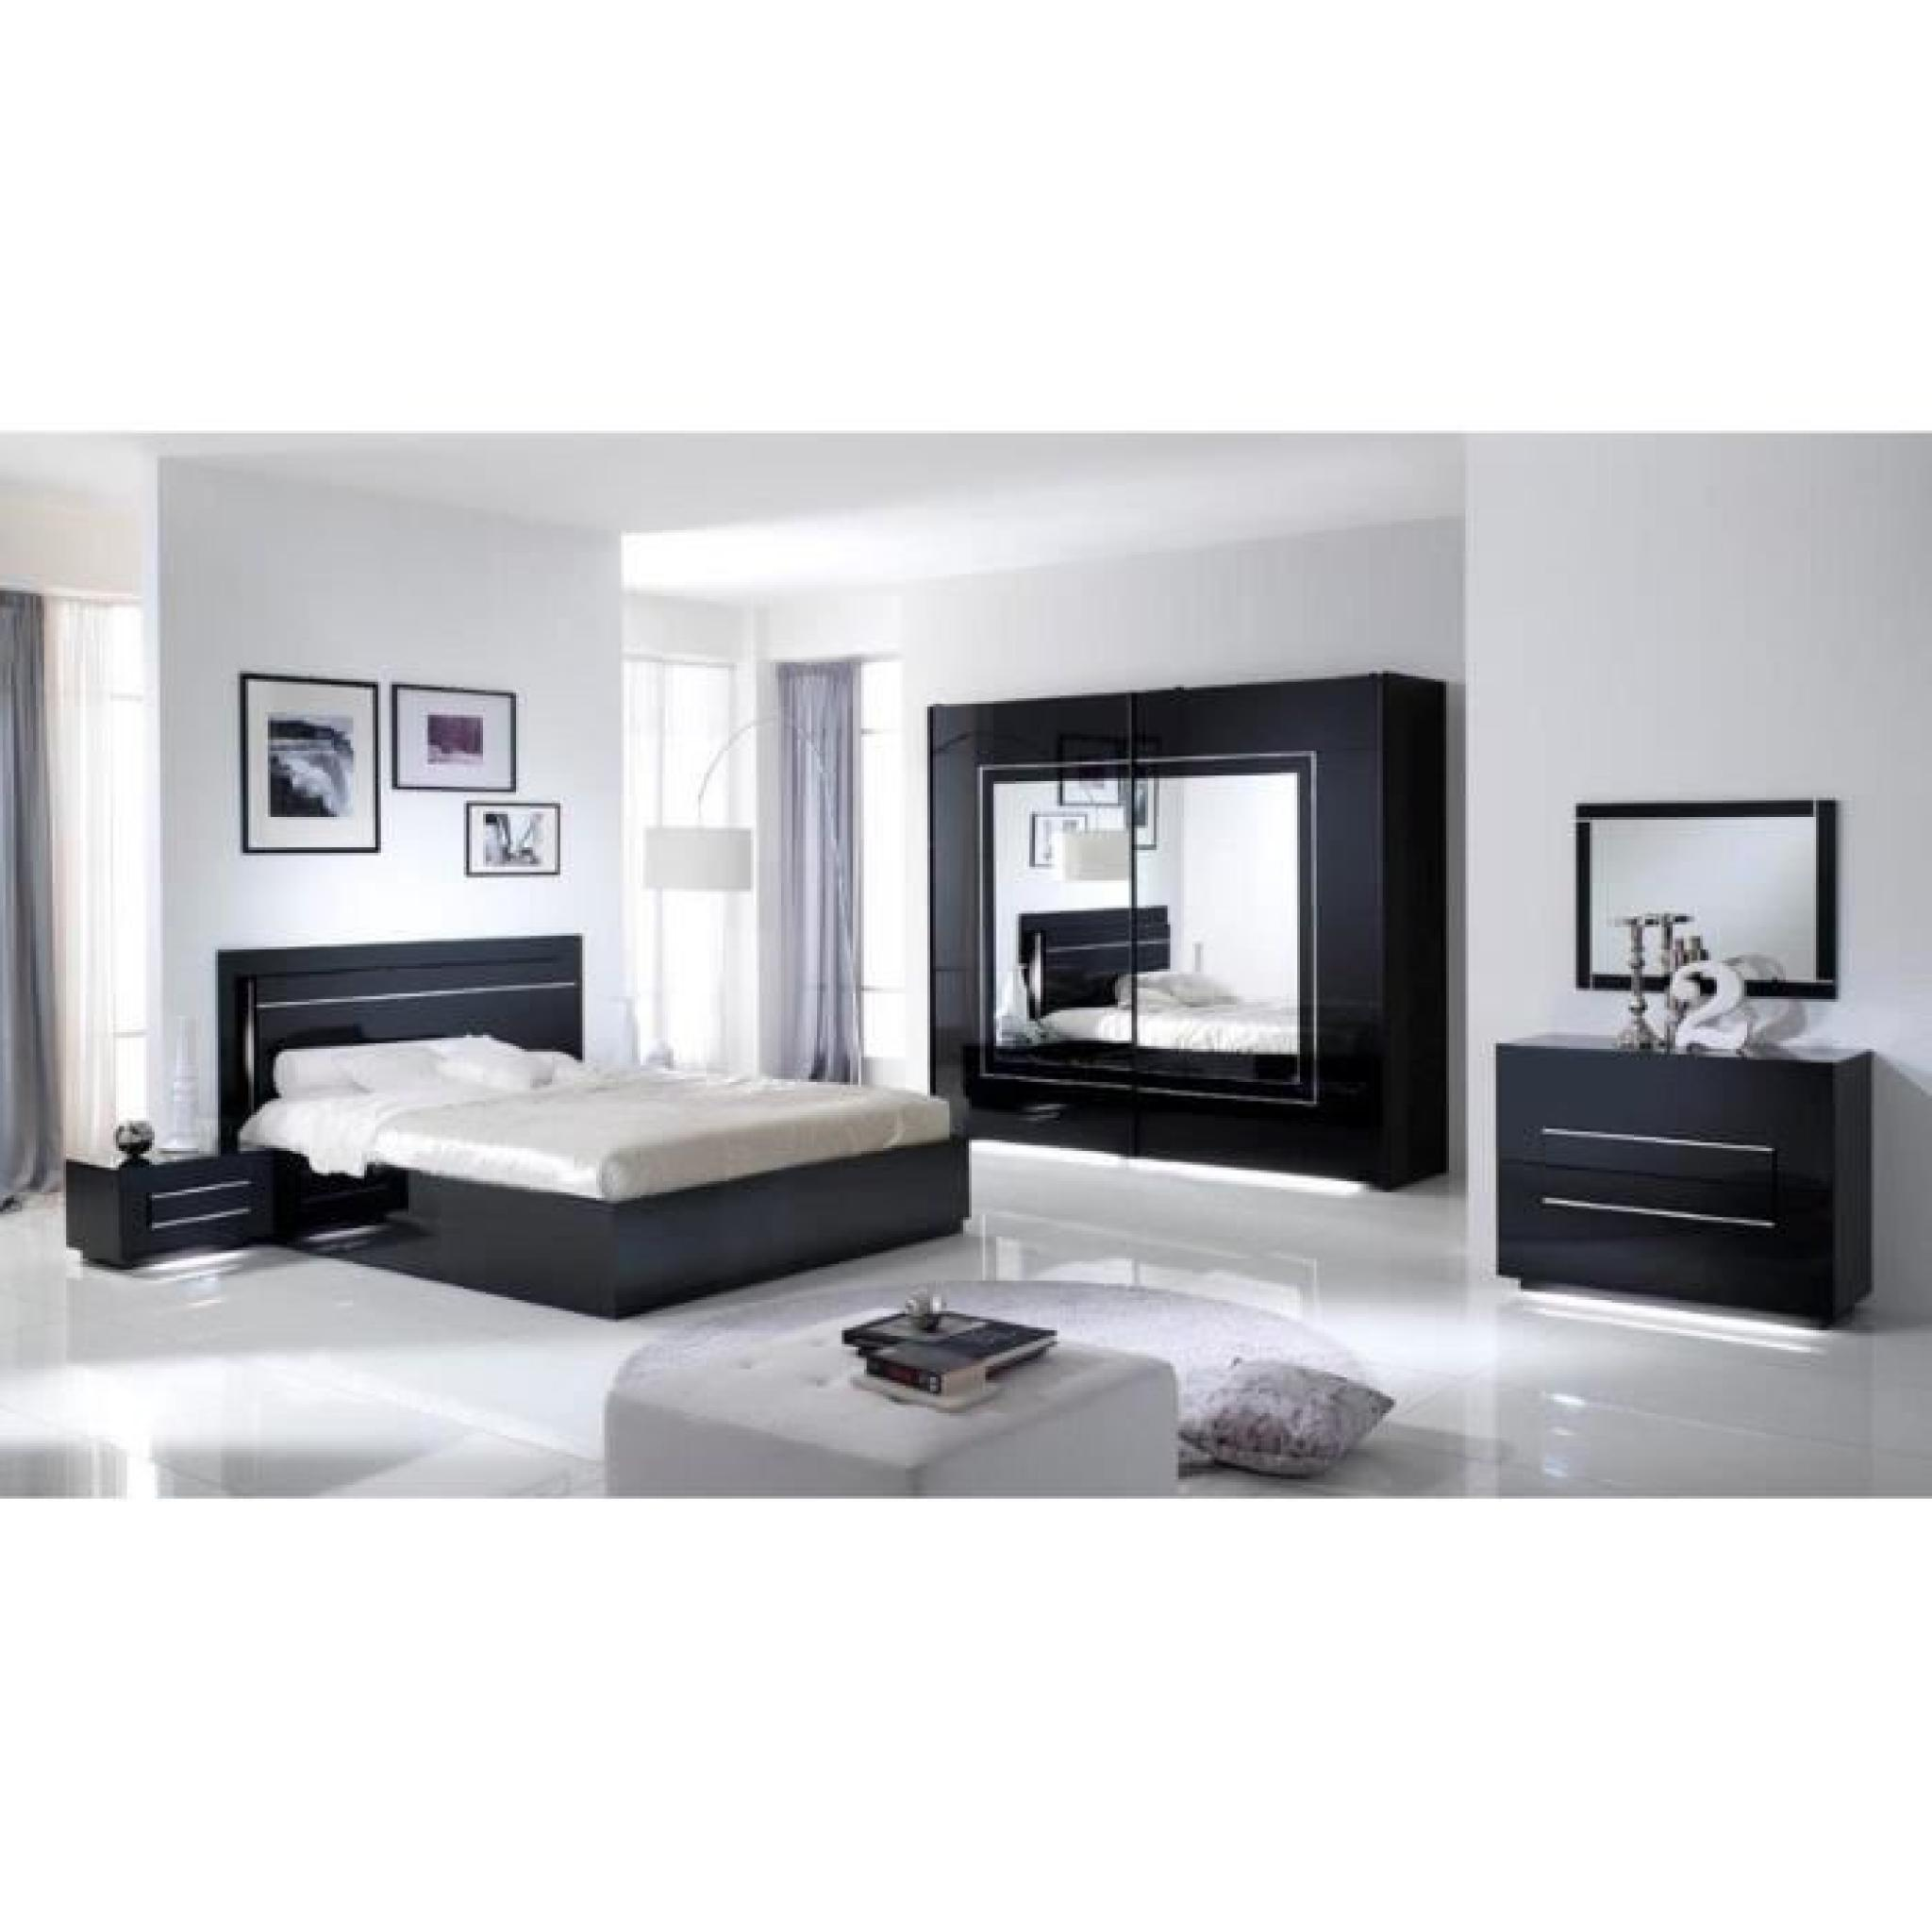 chambre coucher lit accueil design et mobilier. Black Bedroom Furniture Sets. Home Design Ideas